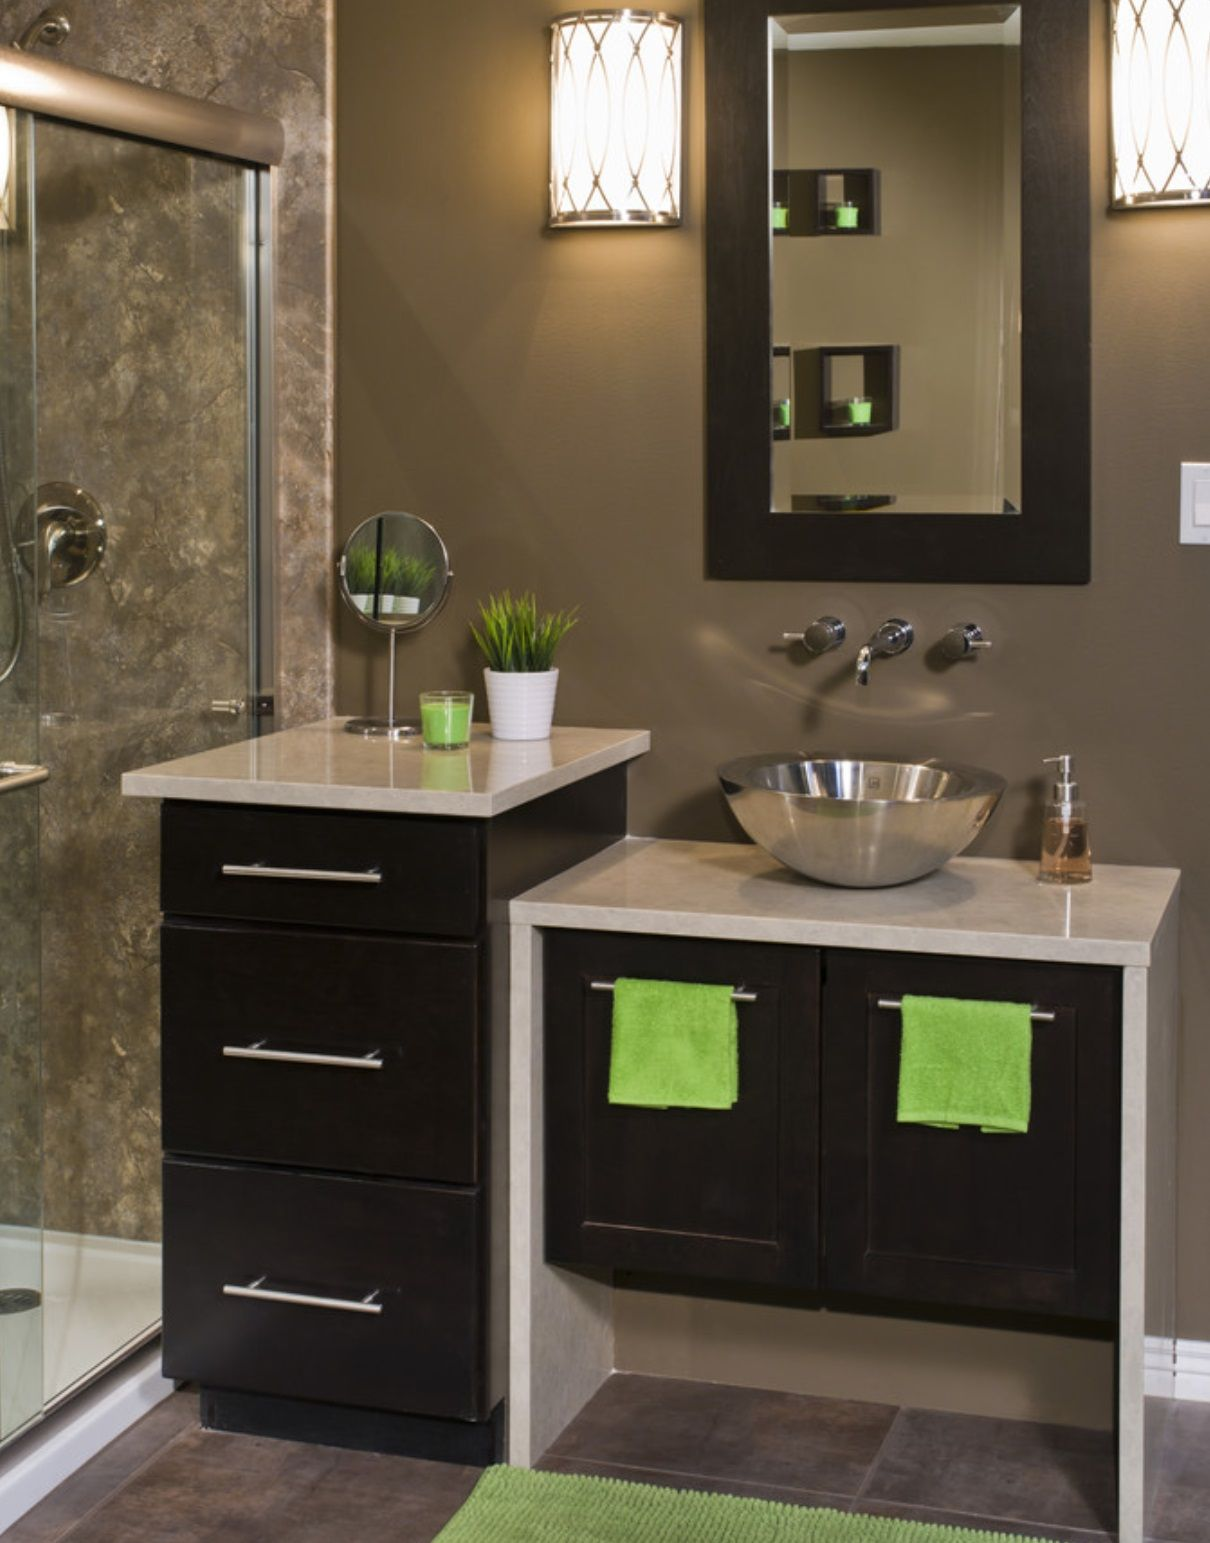 Superbe Awesome Bathroom Vanities Long Island , Best Bathroom Vanities Long Island  66 About Remodel Home Decorating Ideas With Bathroom Vanities Long Island  ...